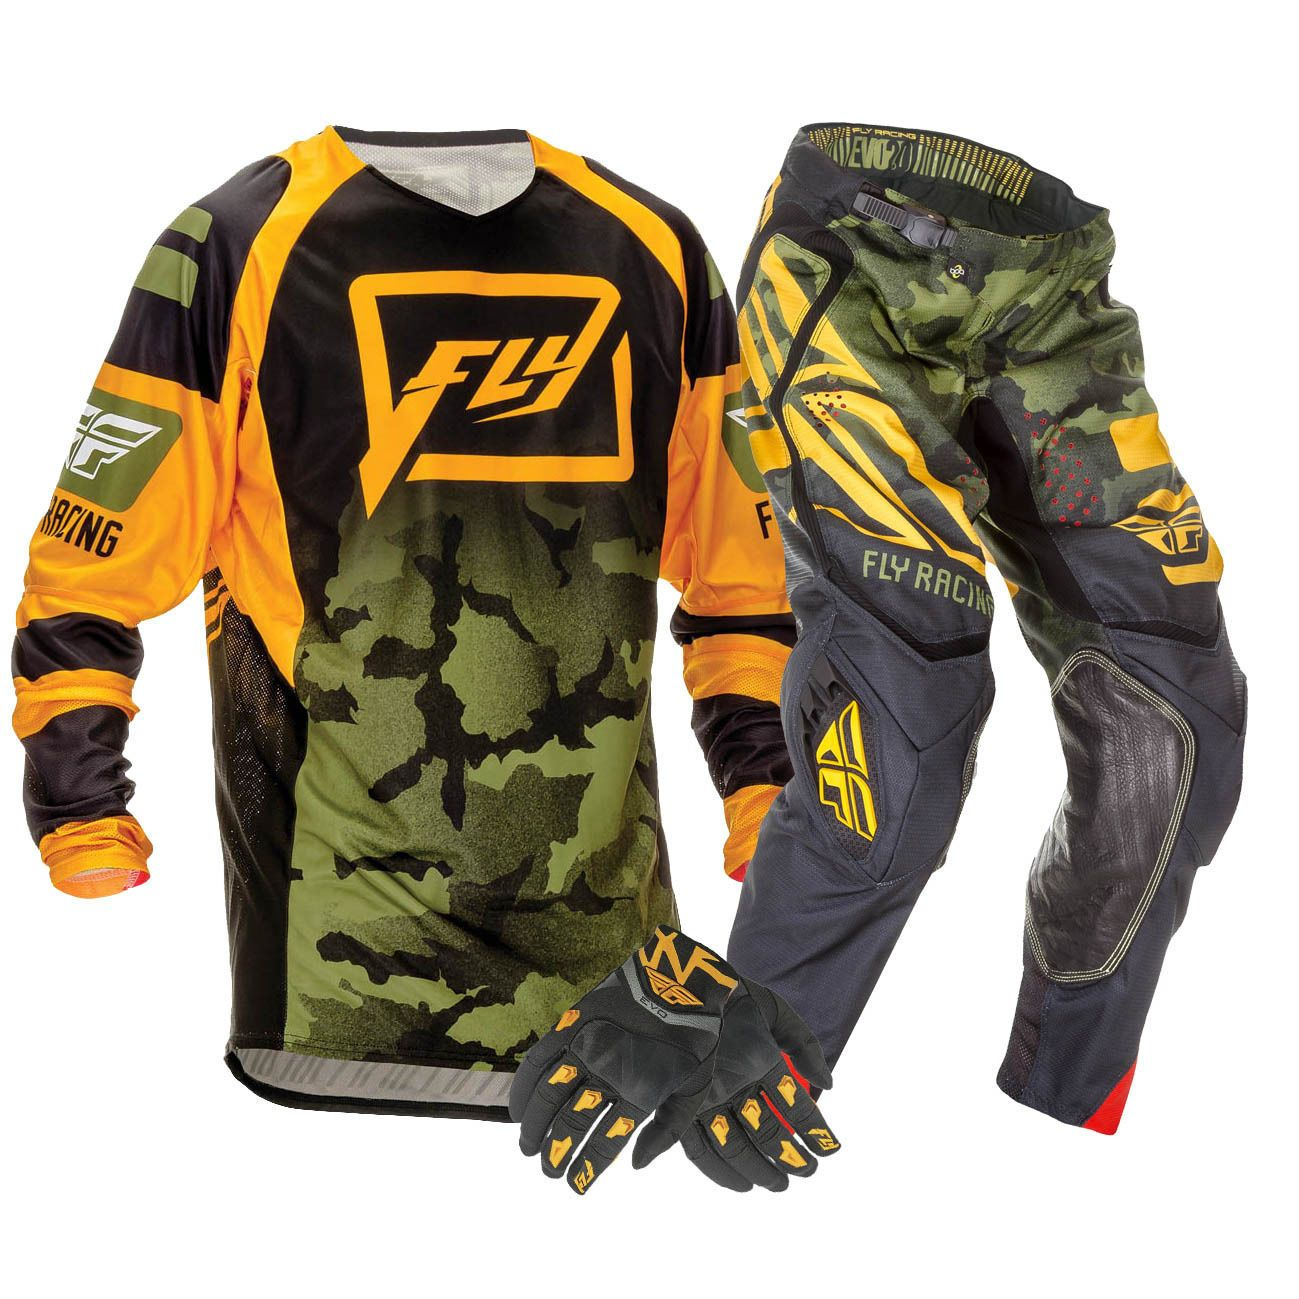 Camo Motocross Gear Mx Combo Craftive Apparels Dirt Bike Gear Motocross Gear Motocross